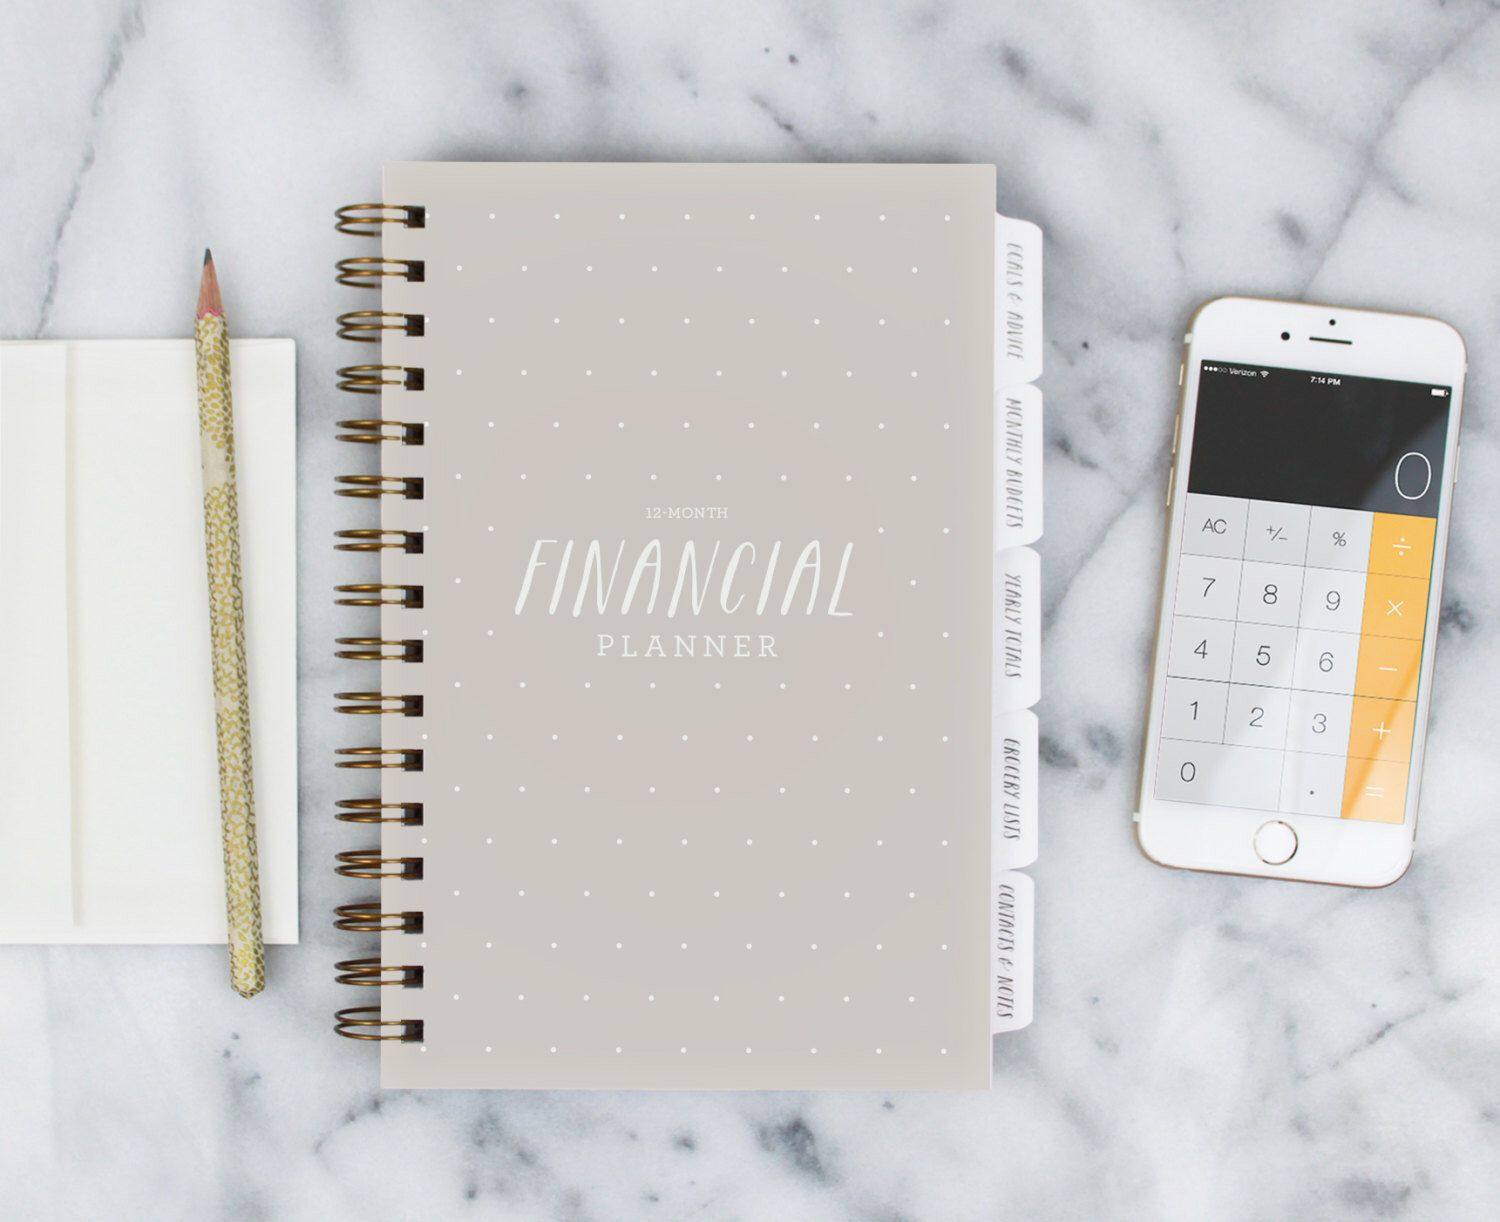 Financial Planner 12month Fillin the Date Planner for